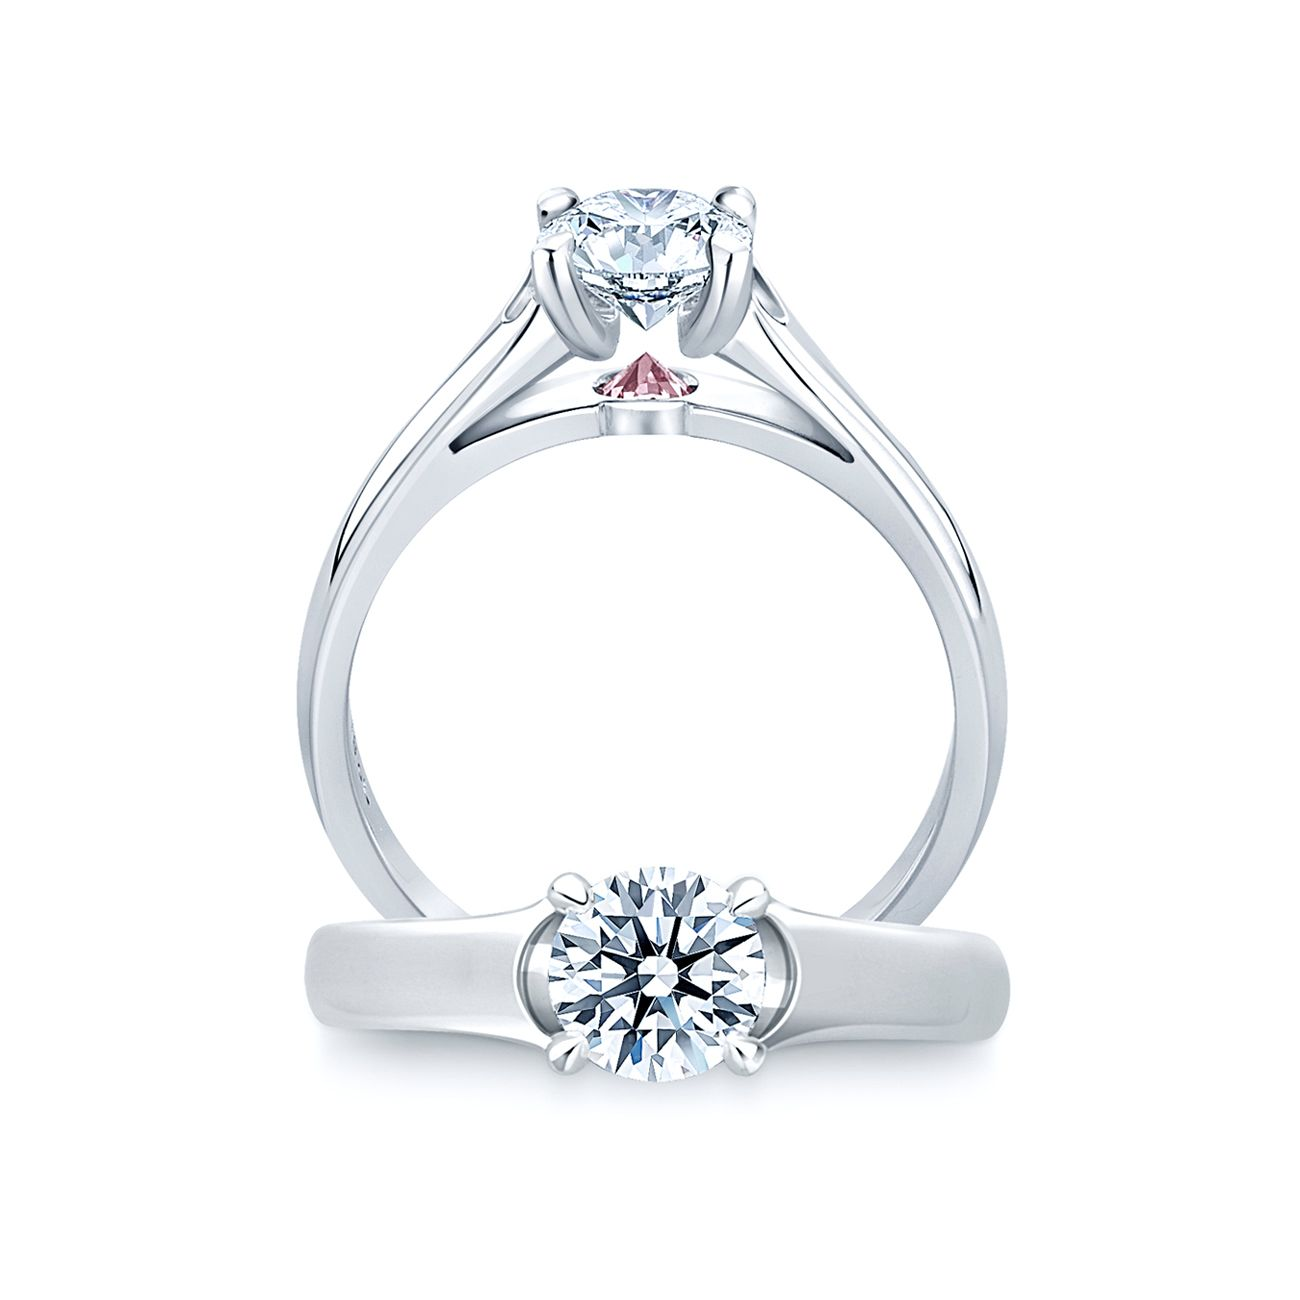 Every Kiss Begins With K Rings